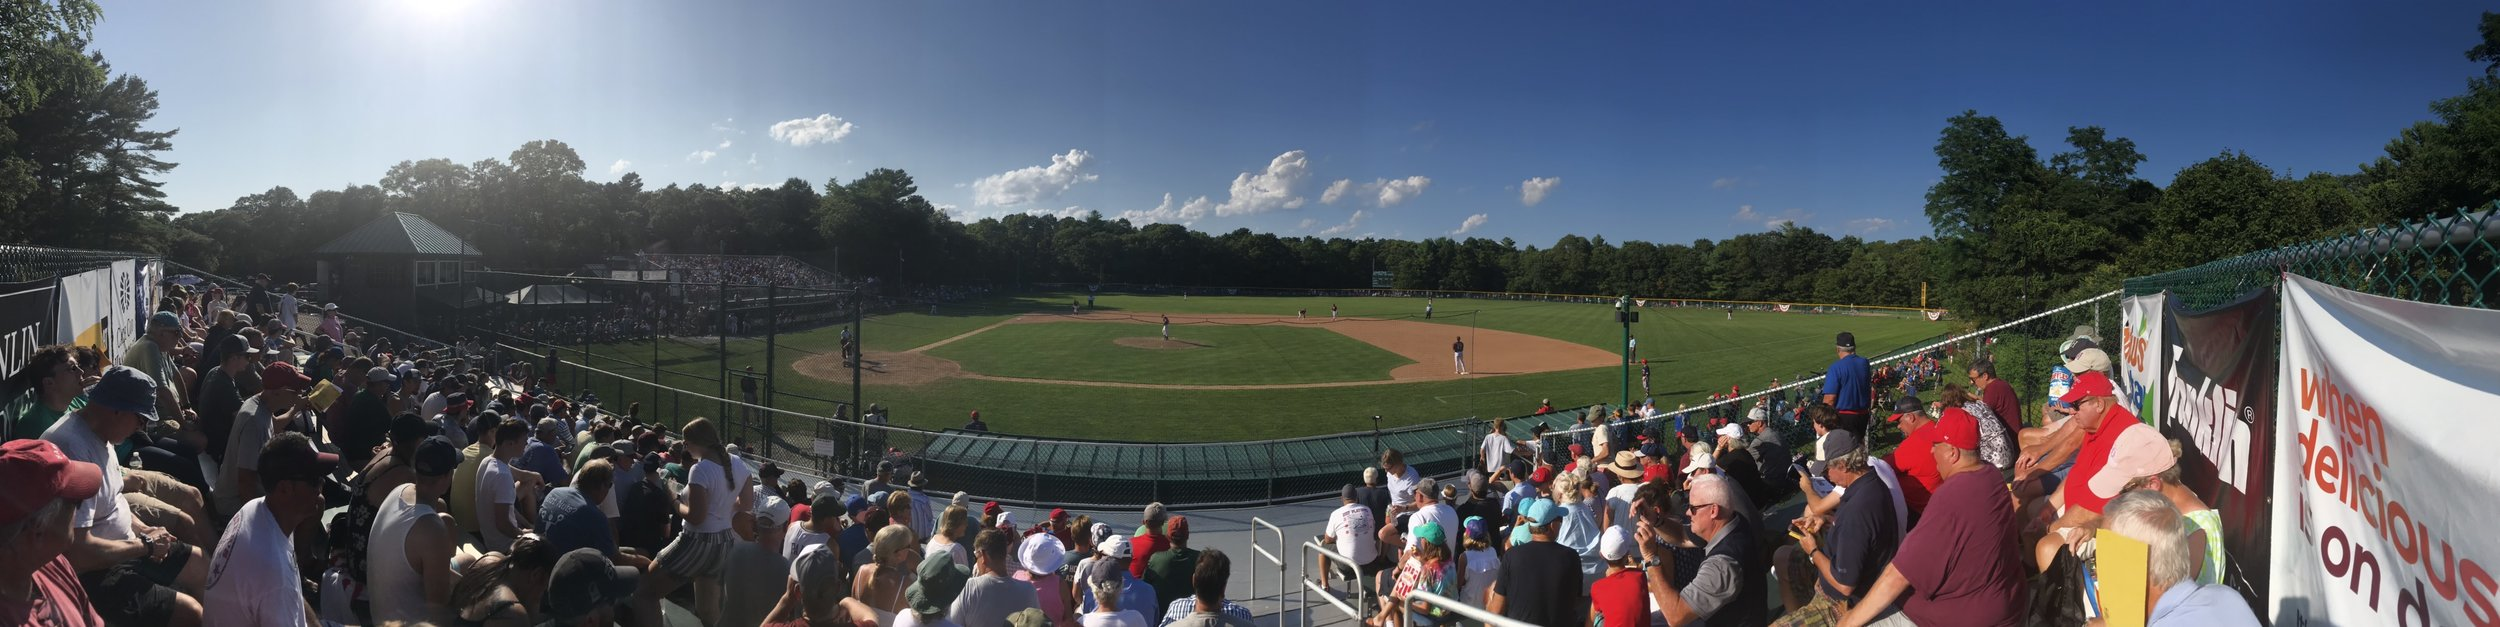 Fans watch Game Two of the 2019 Cape League Championship Series in Cotuit.   Photo by Harrison Meyers.